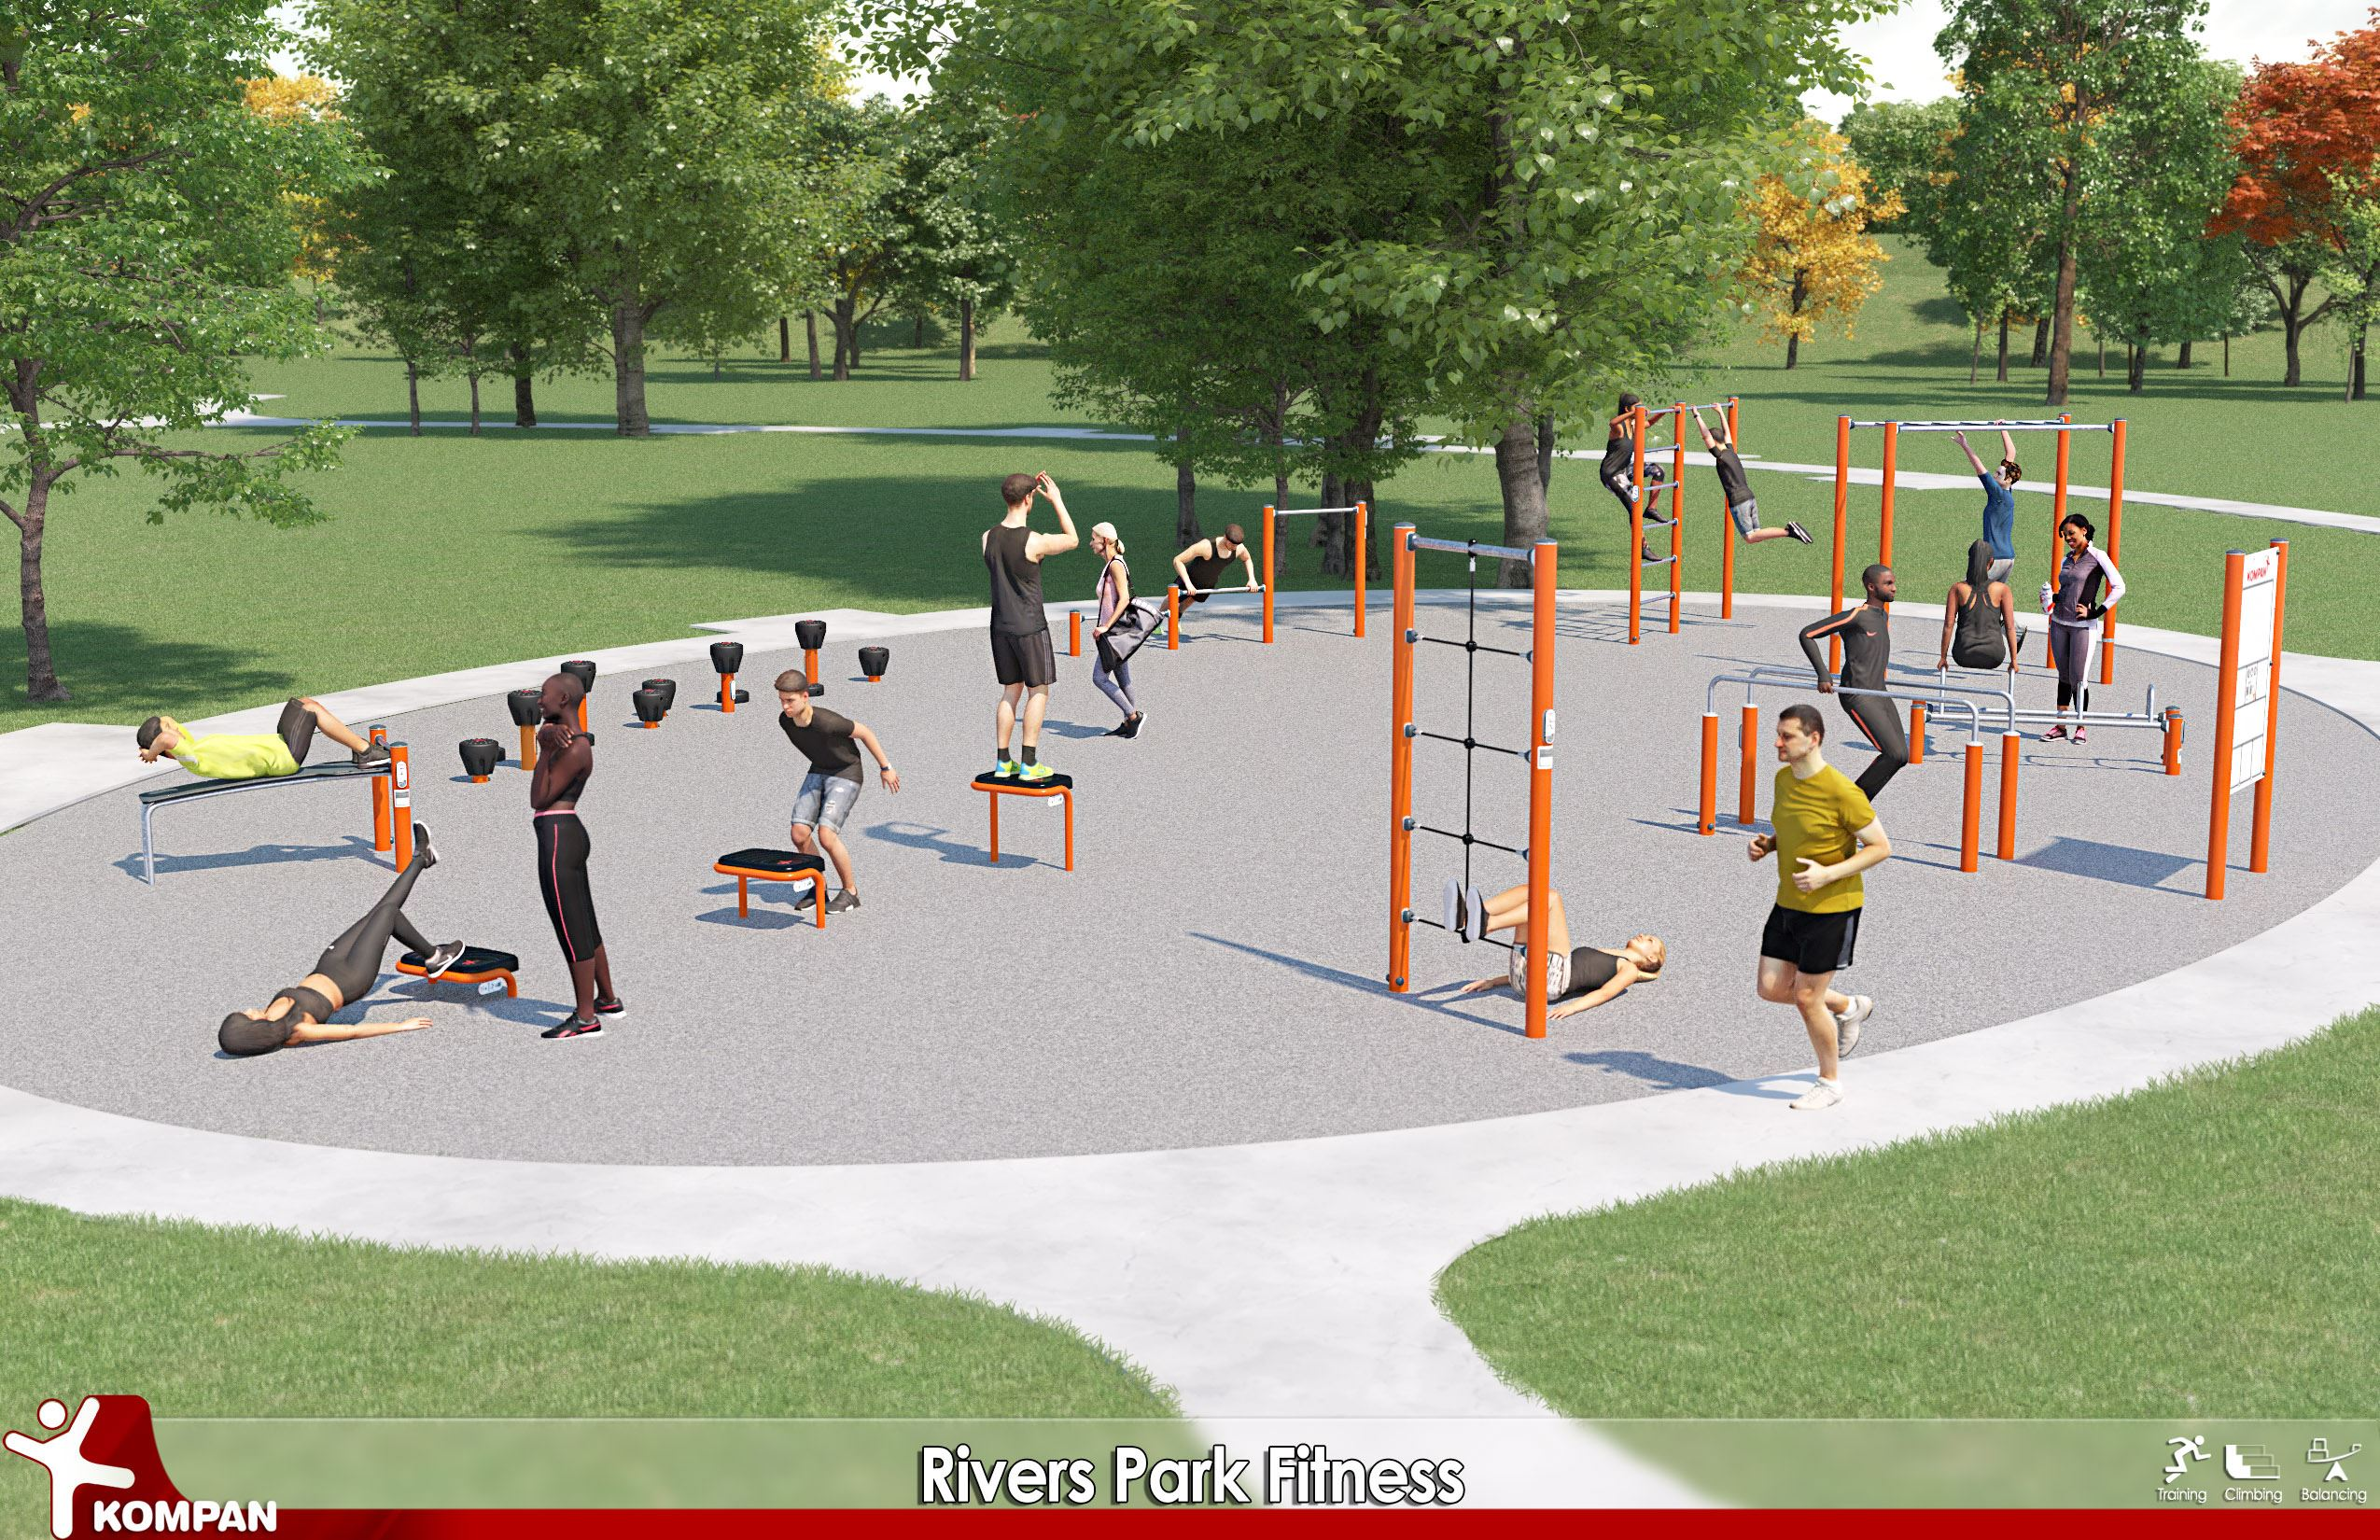 Rivers Park Fitness